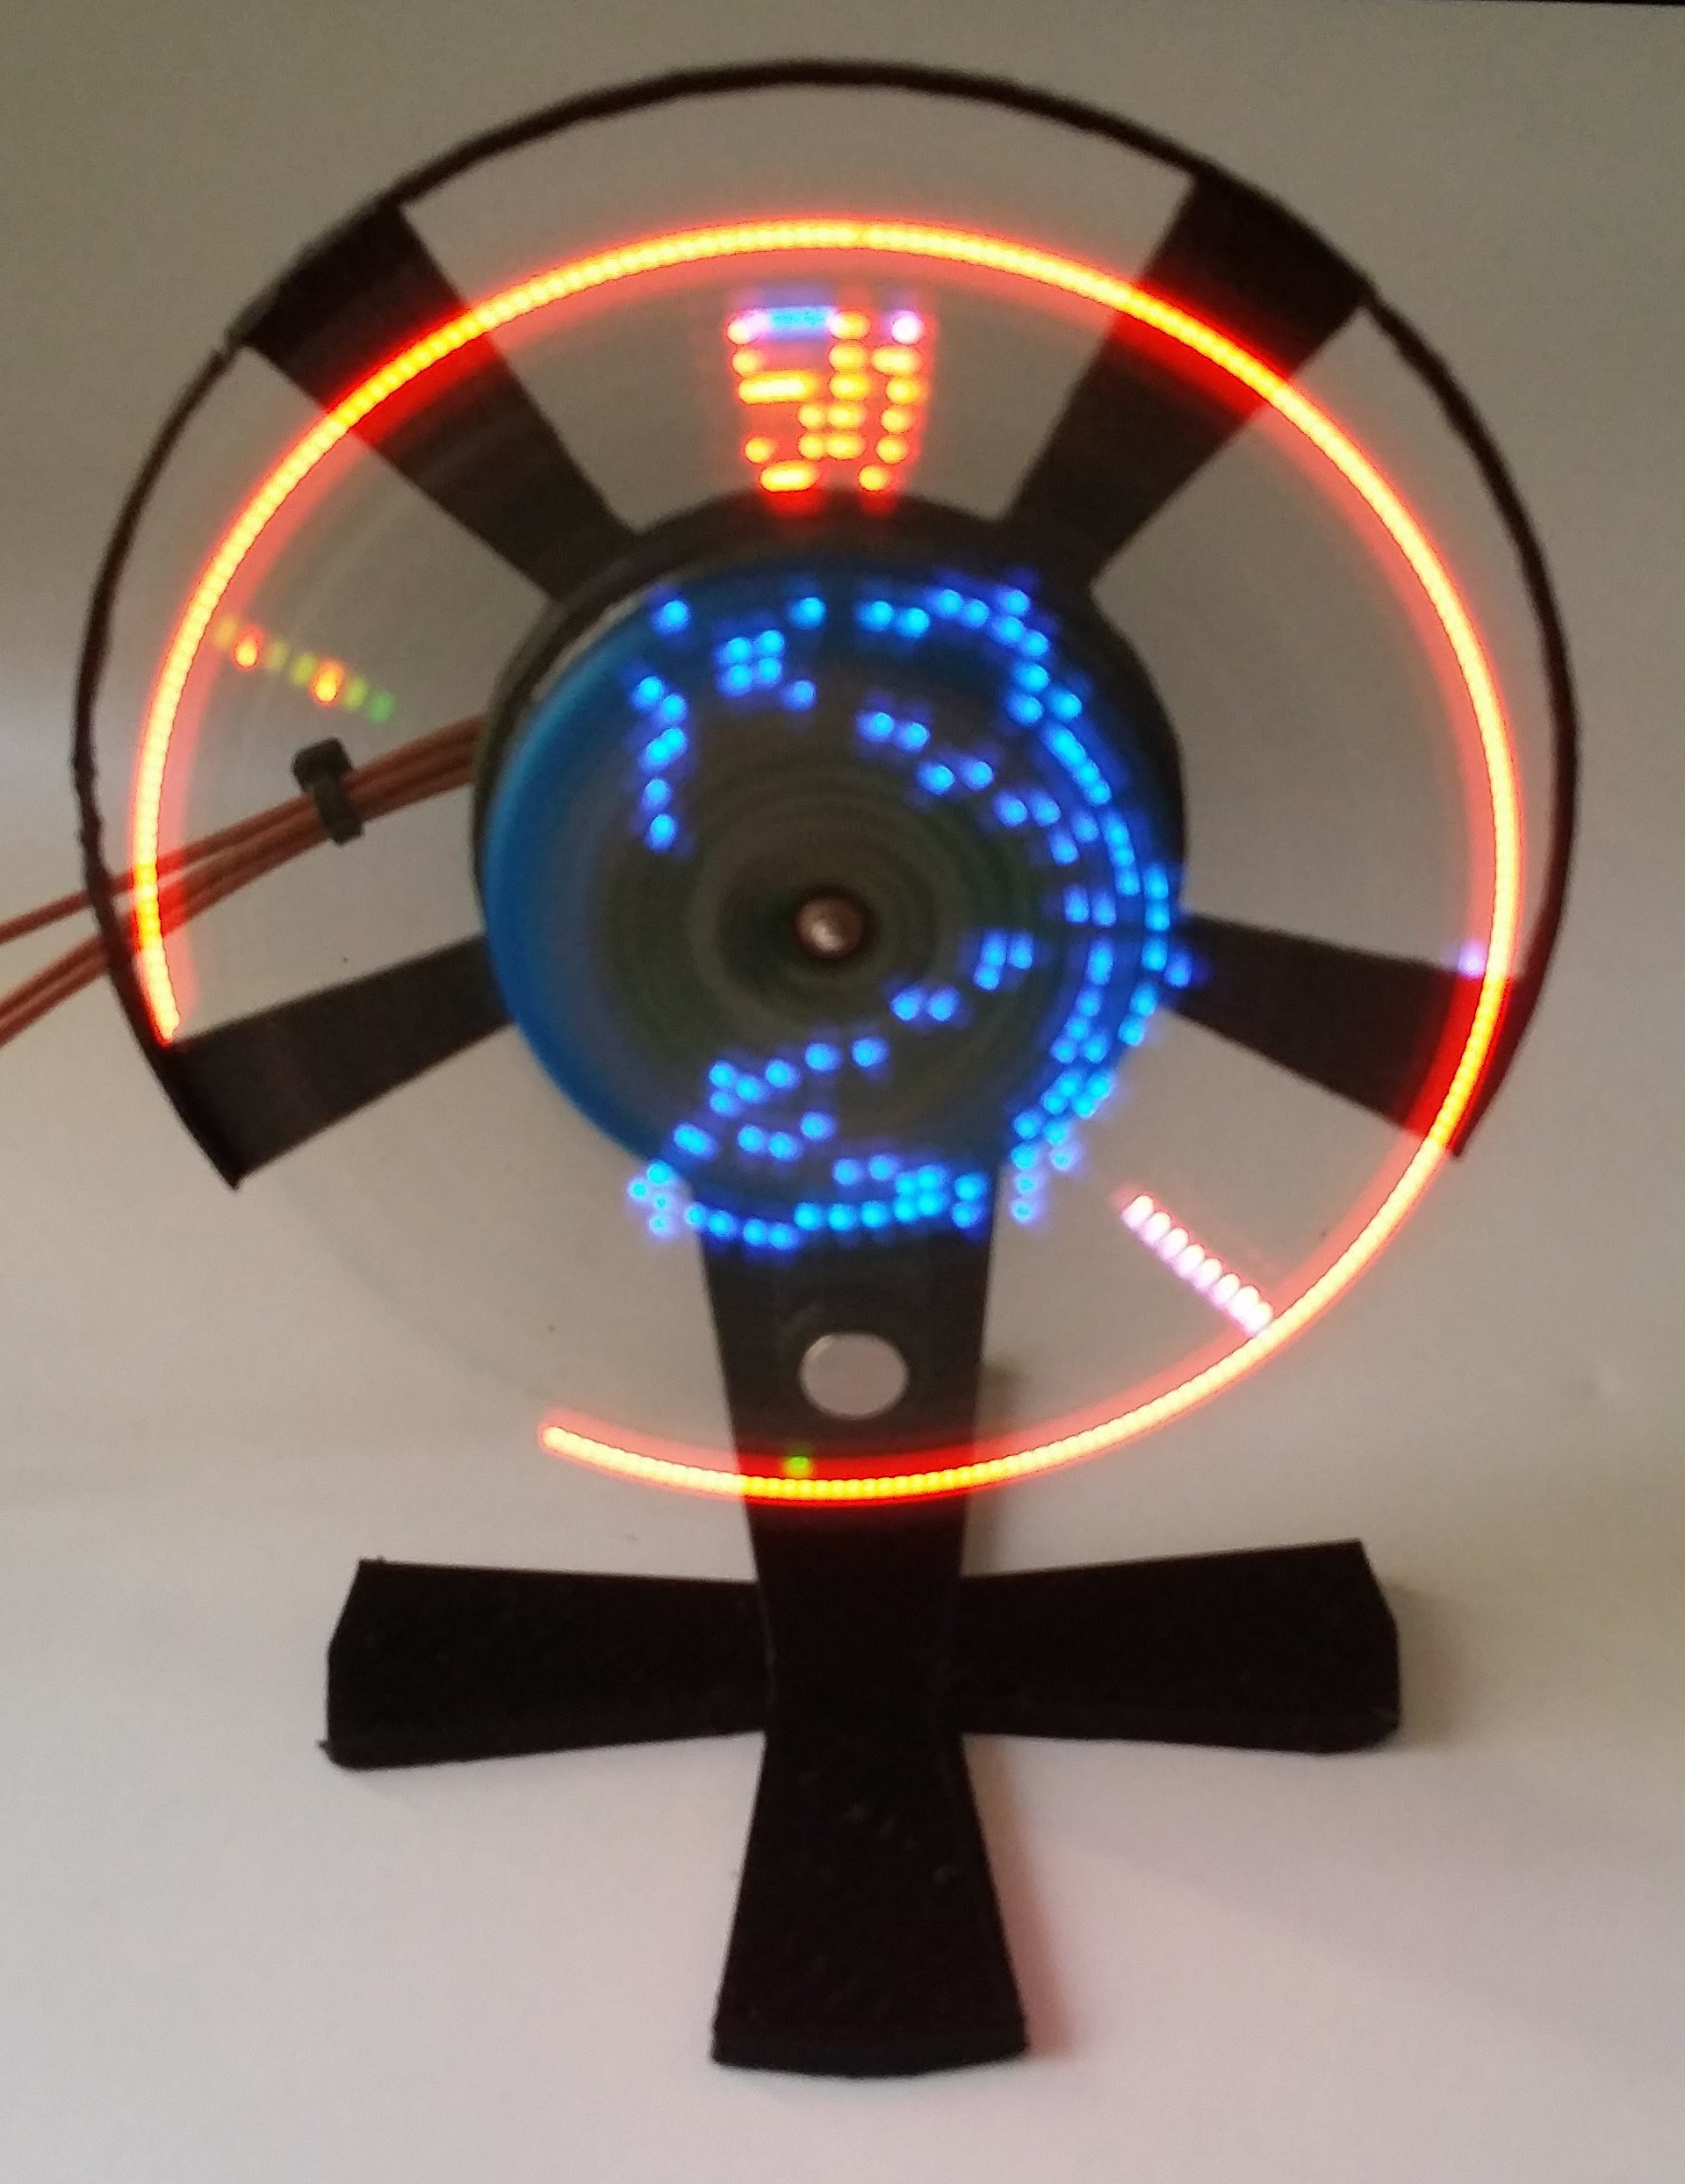 Basic idea of Rotating or Moving Message Propeller LED